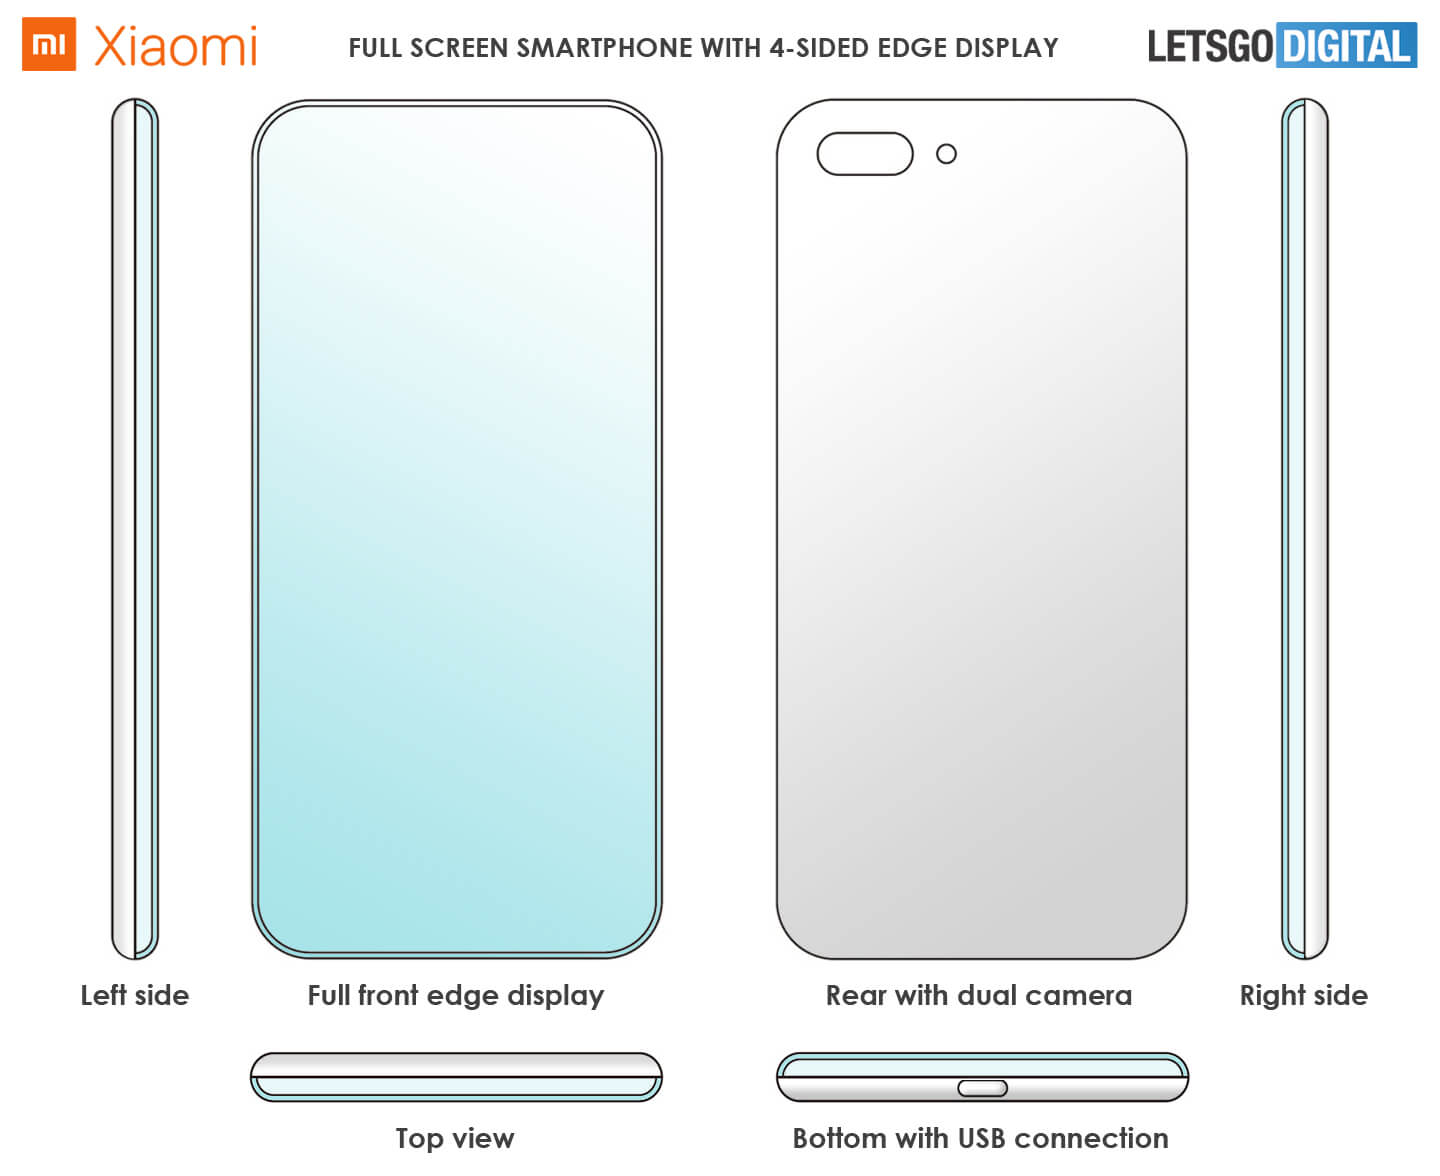 Xiaomi Smartphone Display Patent